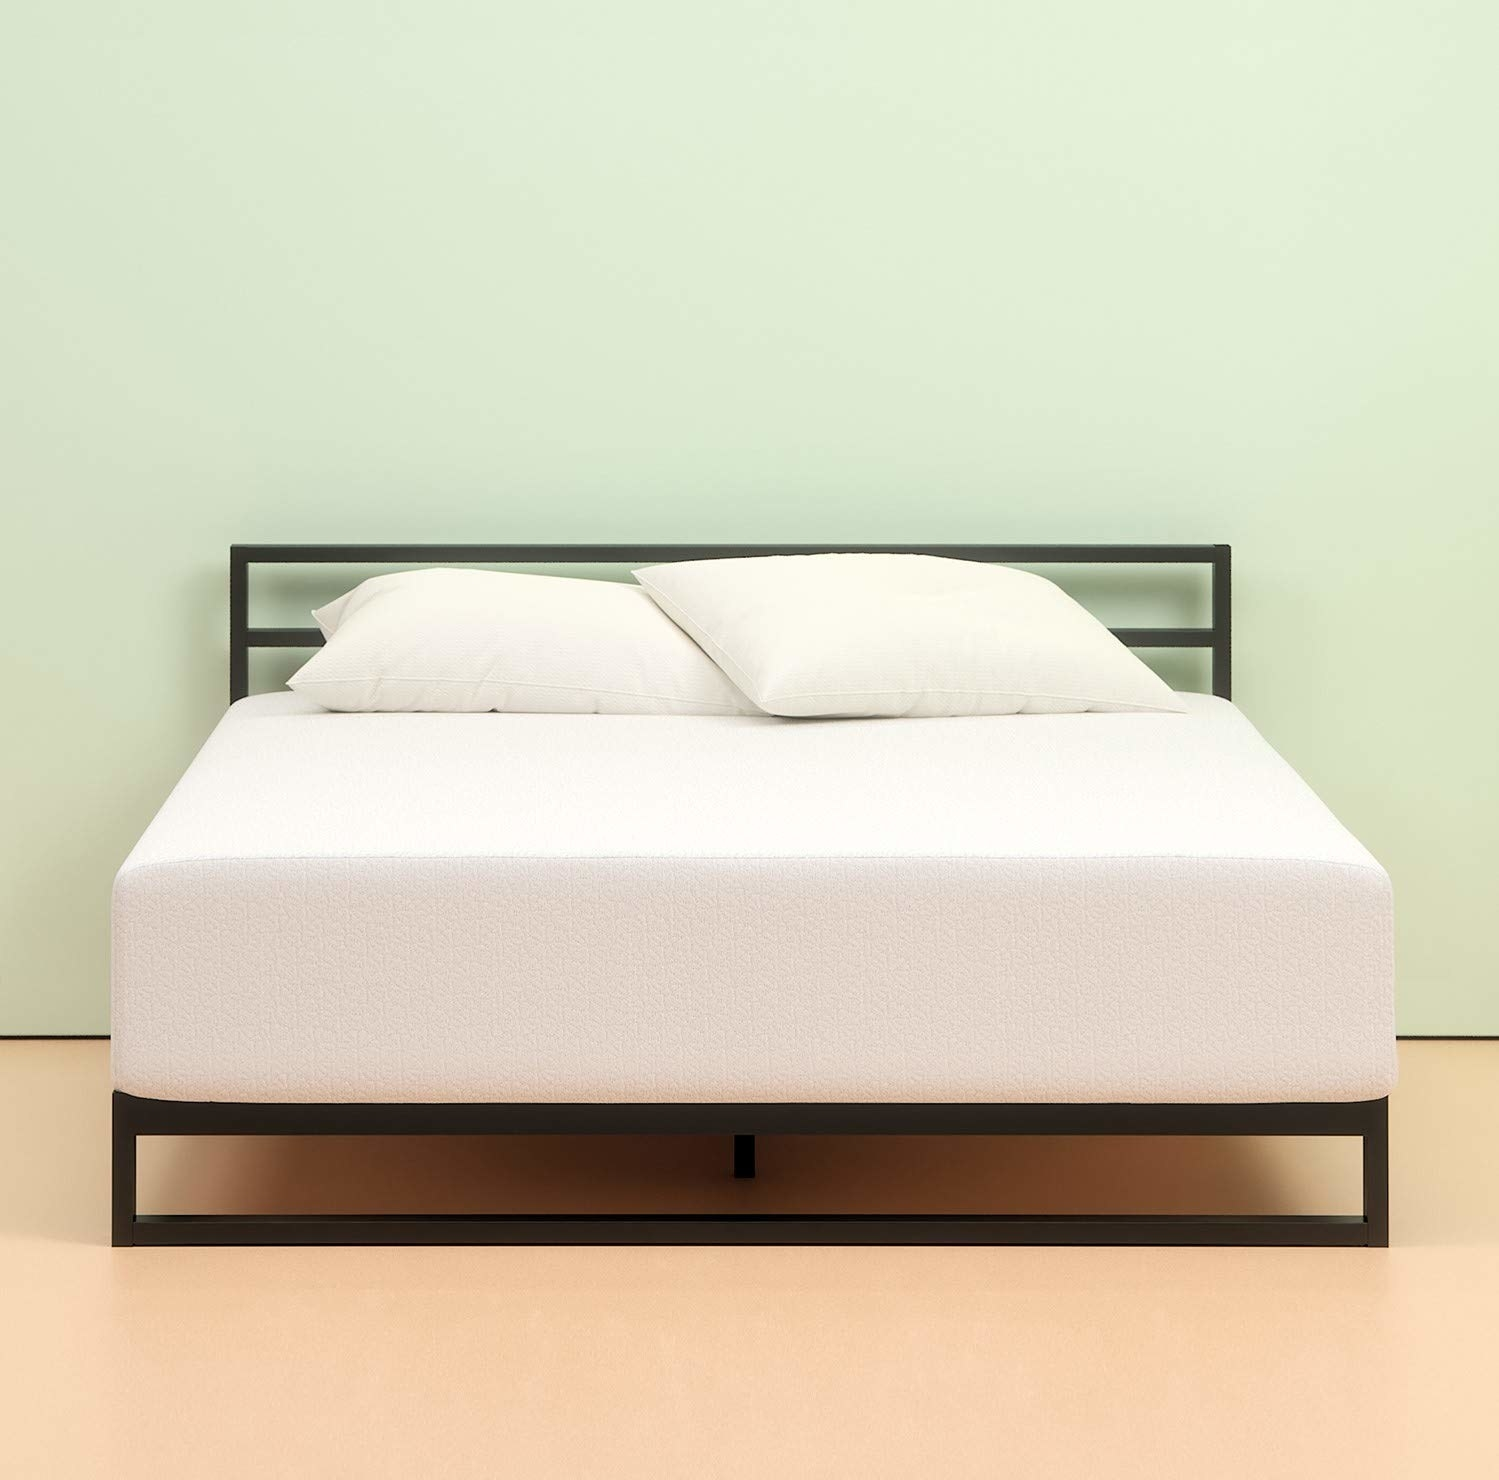 Plush mattress uncovered on metal bed frame